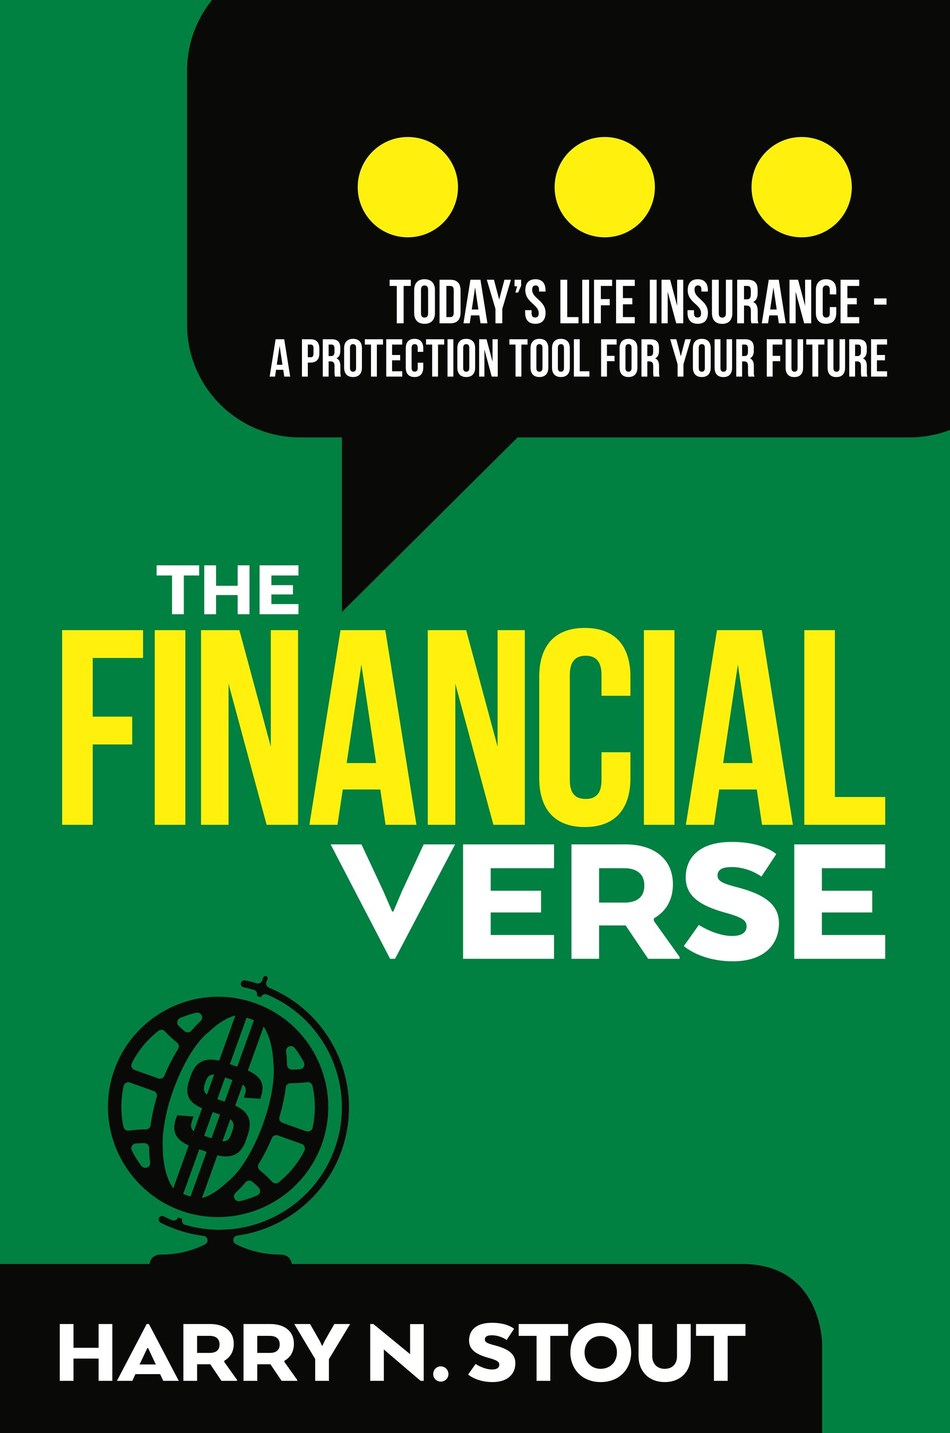 The FinancialVerse - Today's Life Insurance - A Protection Tool for Your Future - explains the protection and piece of mind owning life insurance provides and offers a complete guide to buying the product.